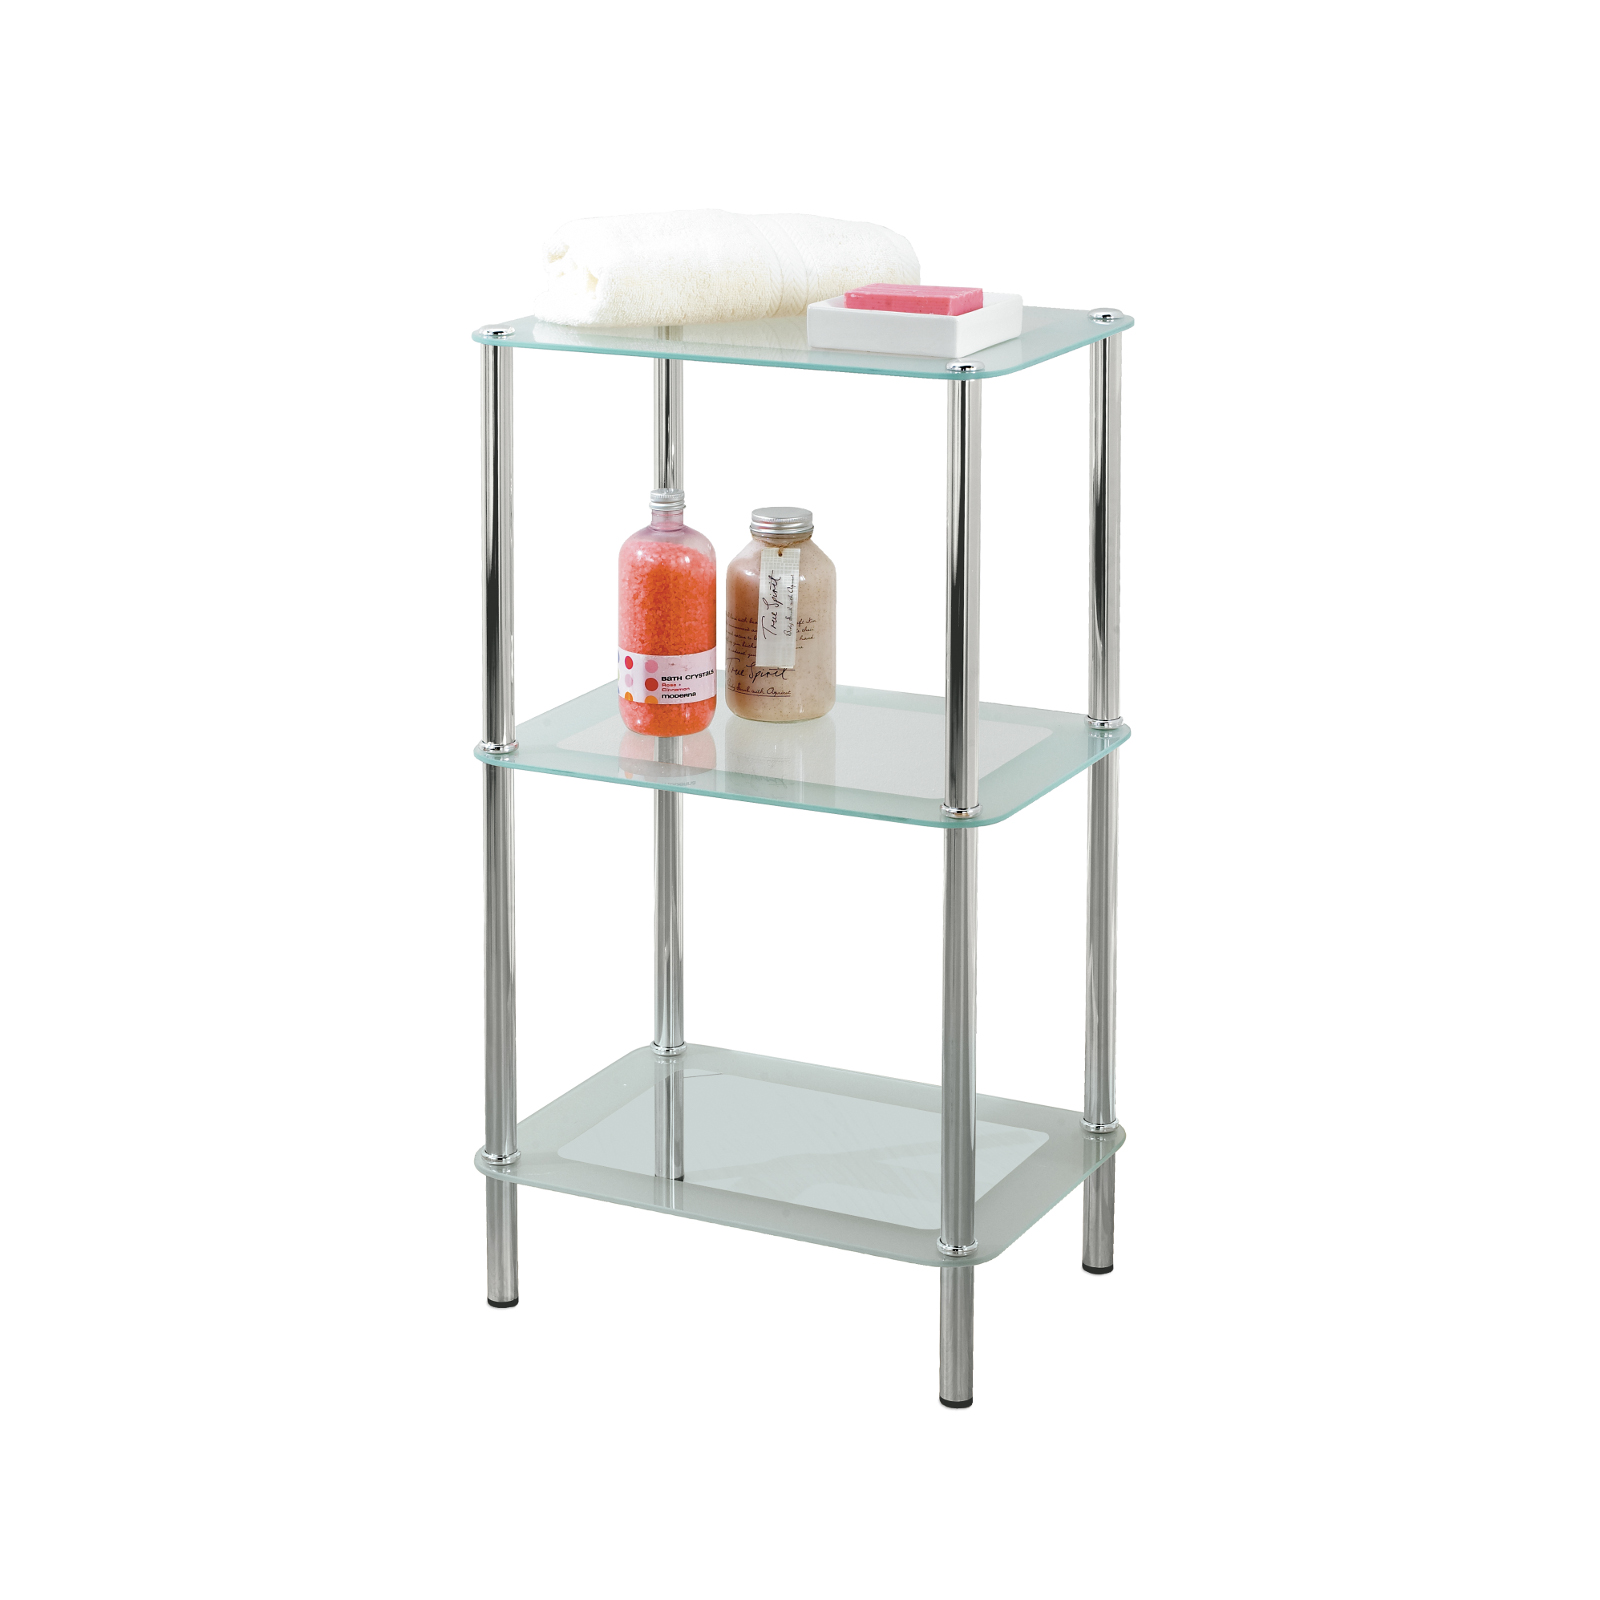 official photos 657b5 df351 Free Standing 3-Tier Rectangular Glass Bathroom Shelf Unit